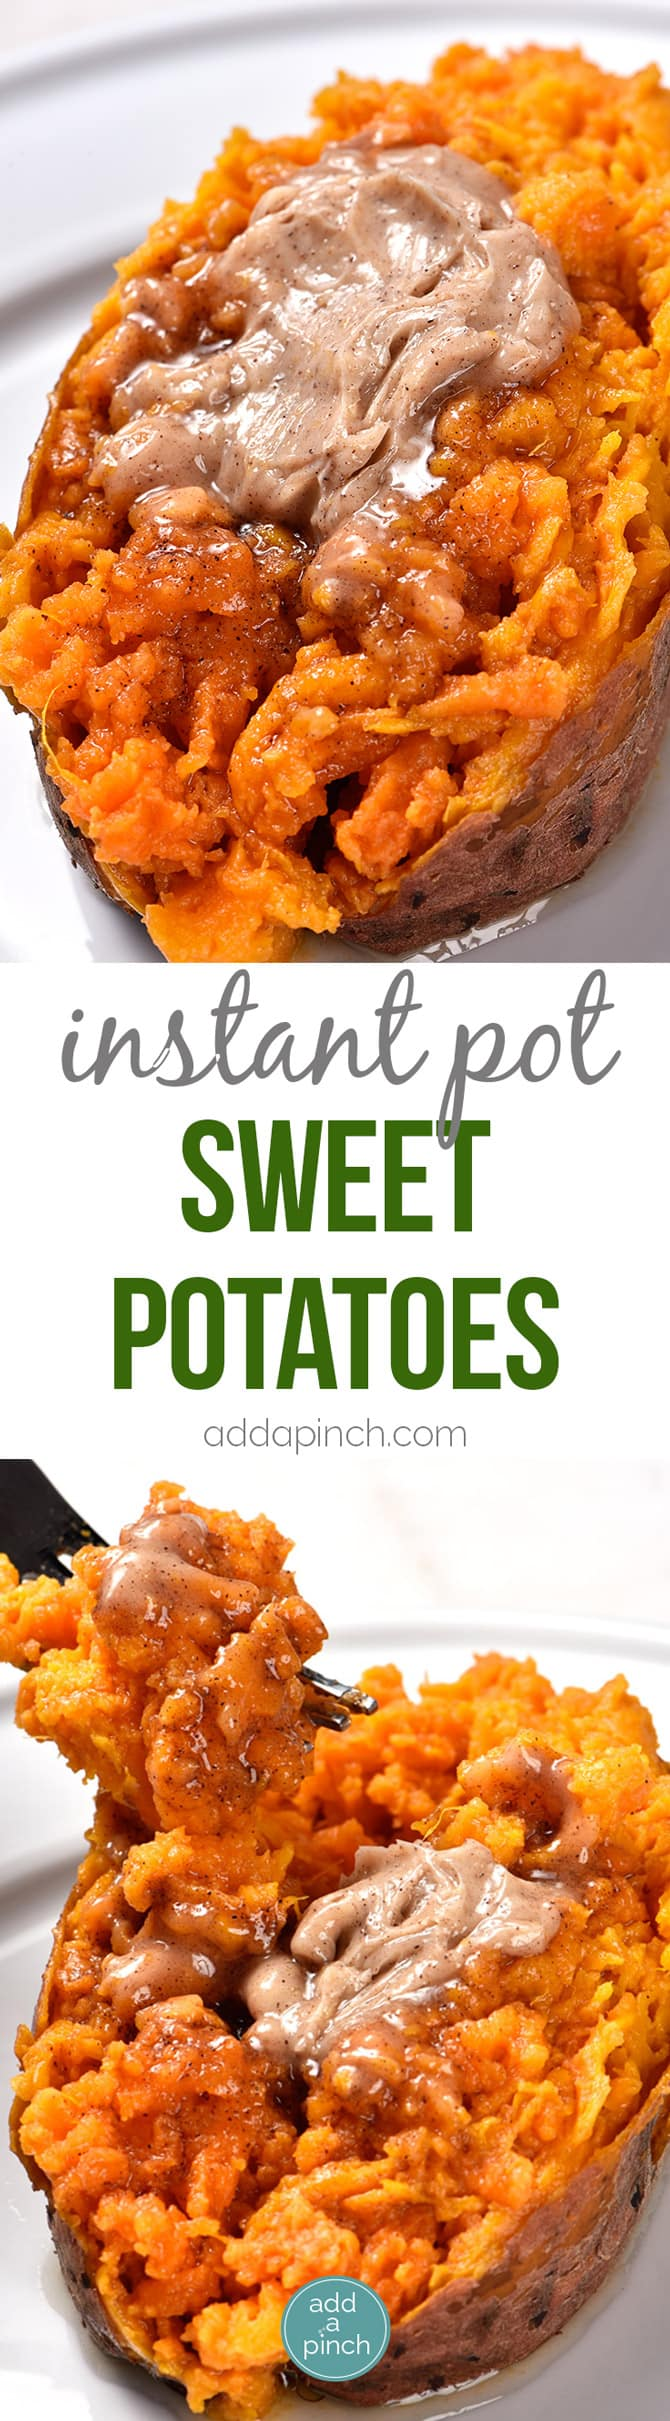 Instant Pot Sweet Potatoes Recipe - Cooking sweet potatoes in an Instant Pot or other electric pressure cooker makes cooking sweet potatoes so quick and easy! Perfect for enjoying as baked sweet potatoes as a side dish or for cooking to use in sweet potato casserole and so many other dishes! // addapinch.com